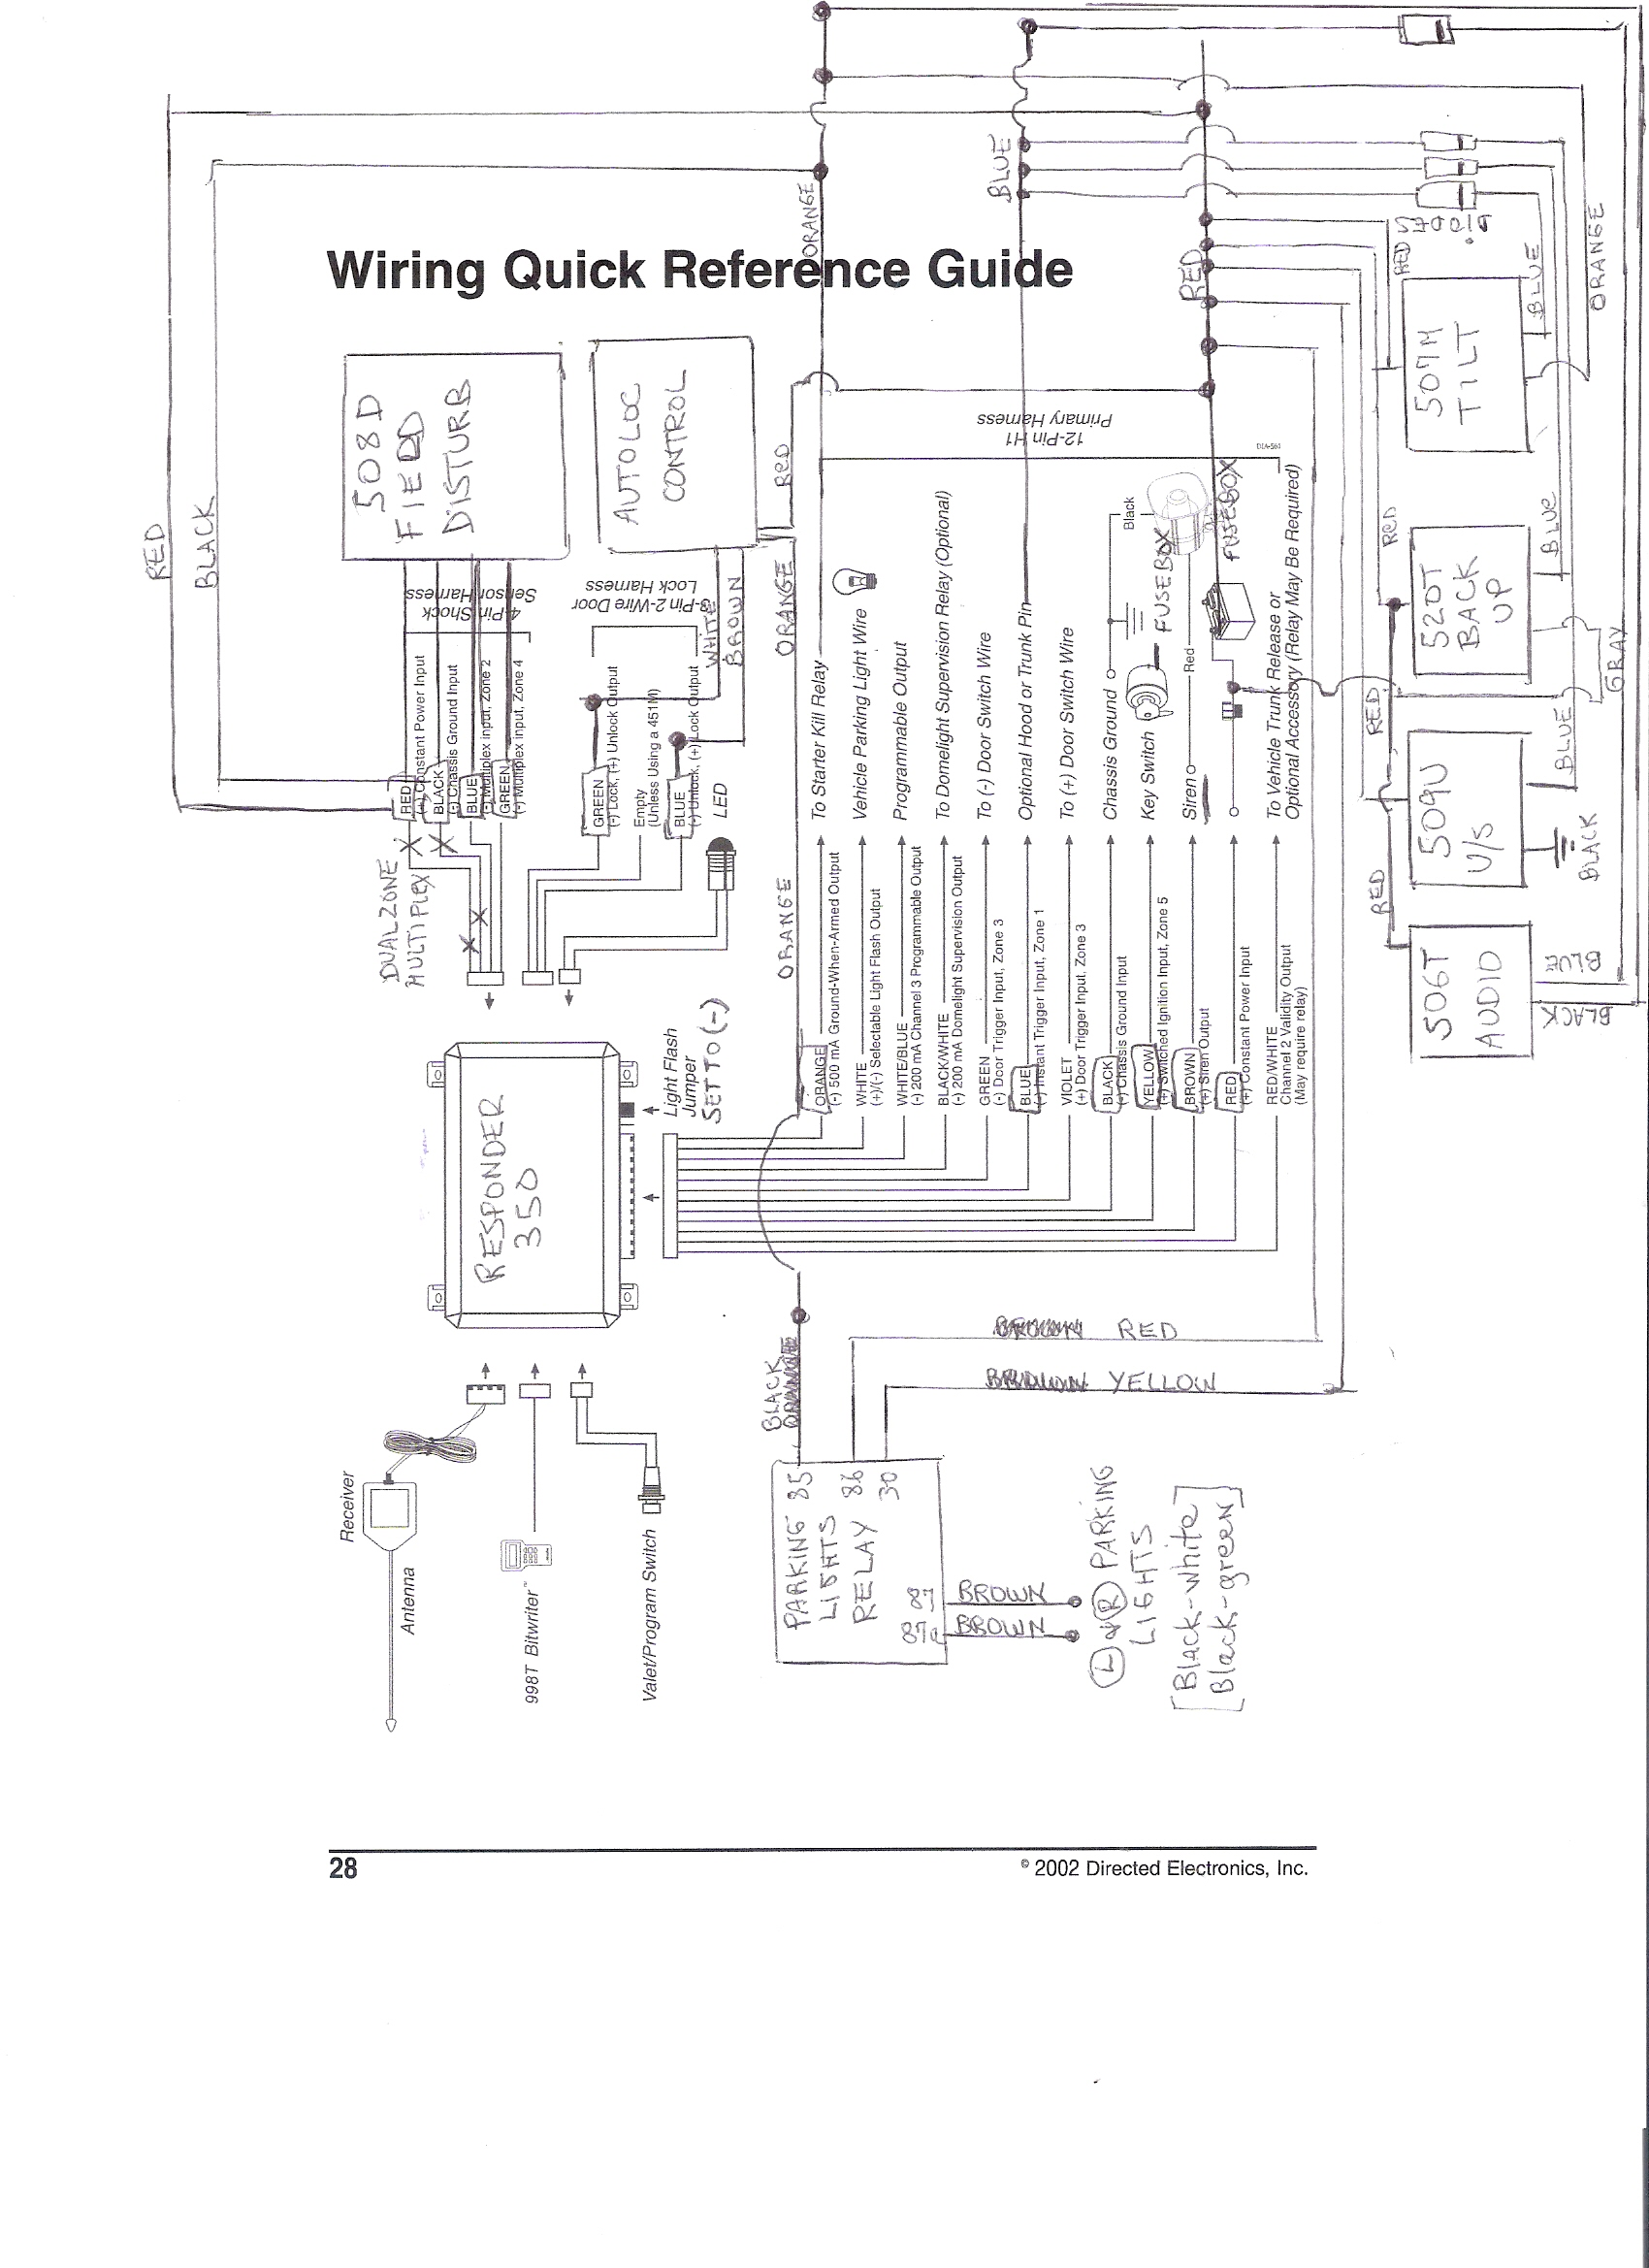 pagoda sl group technical manual accessories Autoloc Wiring Diagram Autoloc Wiring Diagram #6 wiring diagram for autoloc kl1800